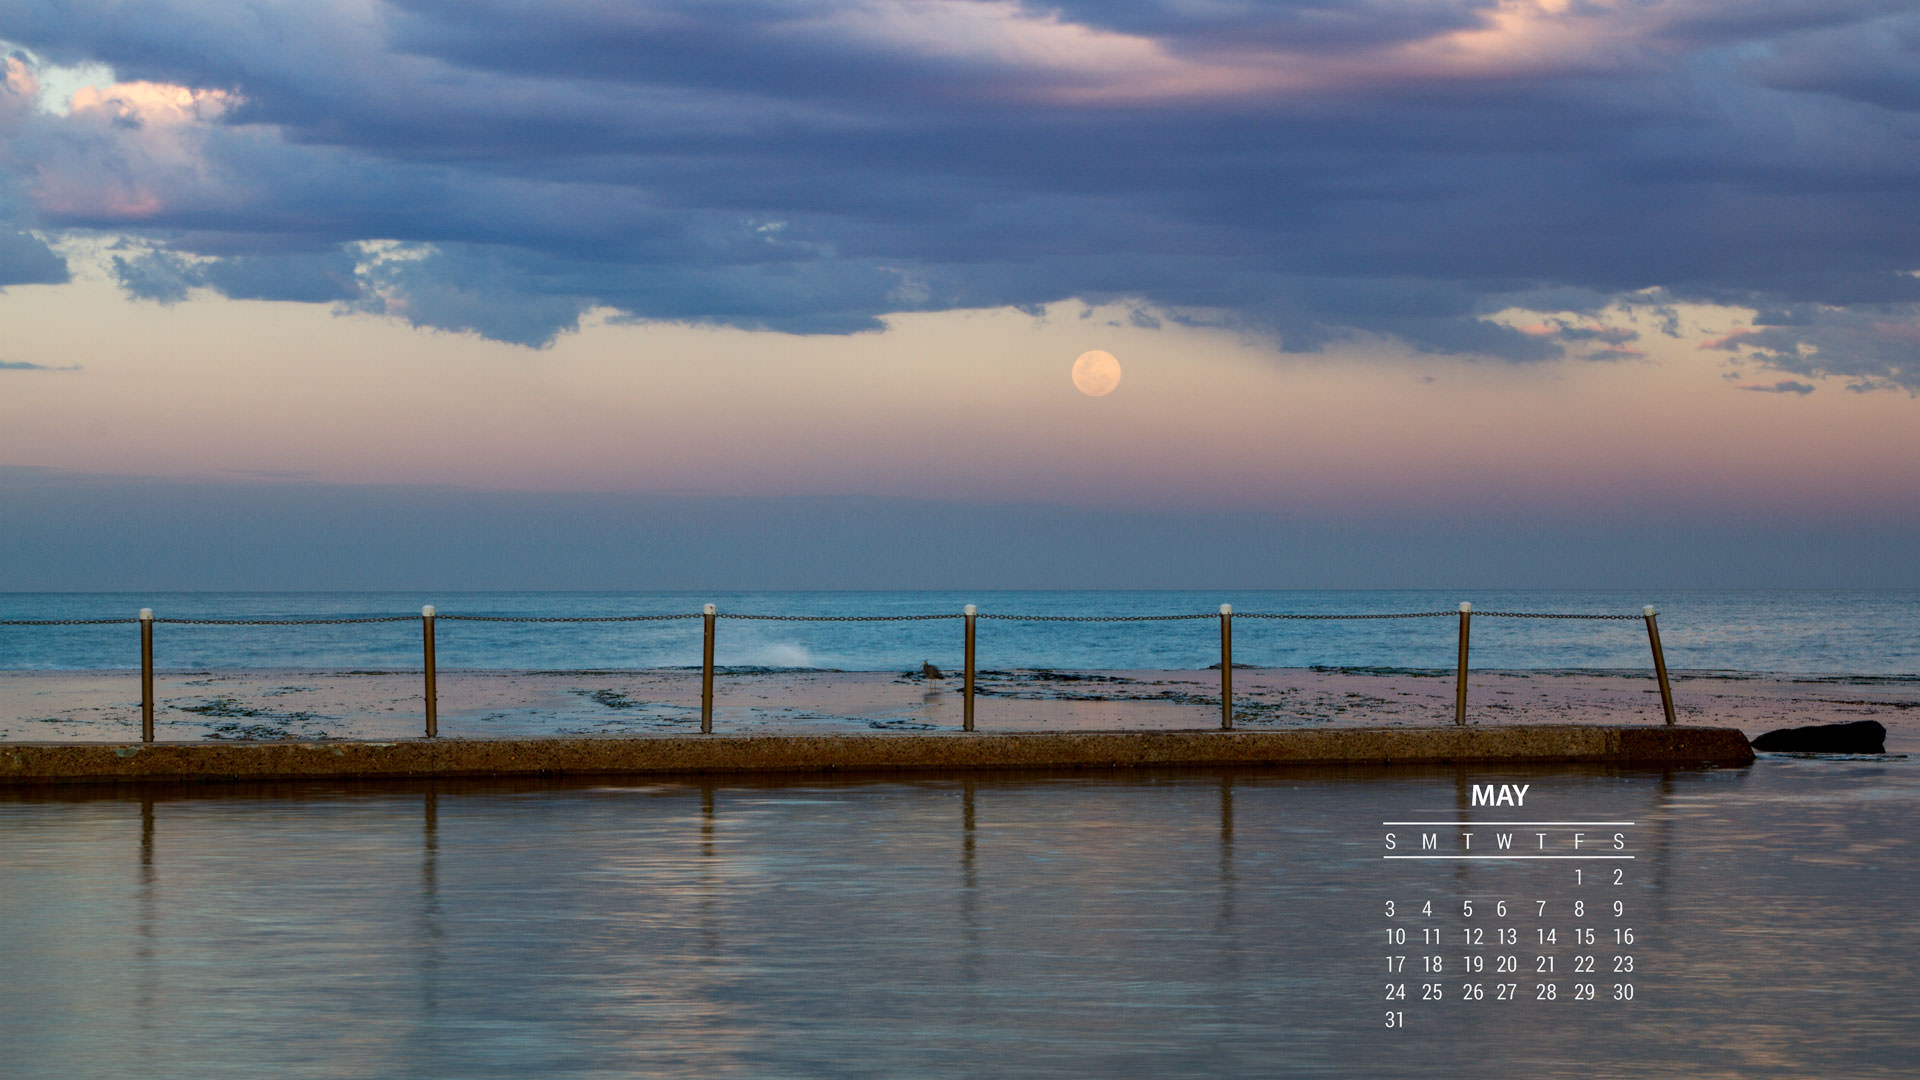 Free Calendar Wallpaper – May 2015